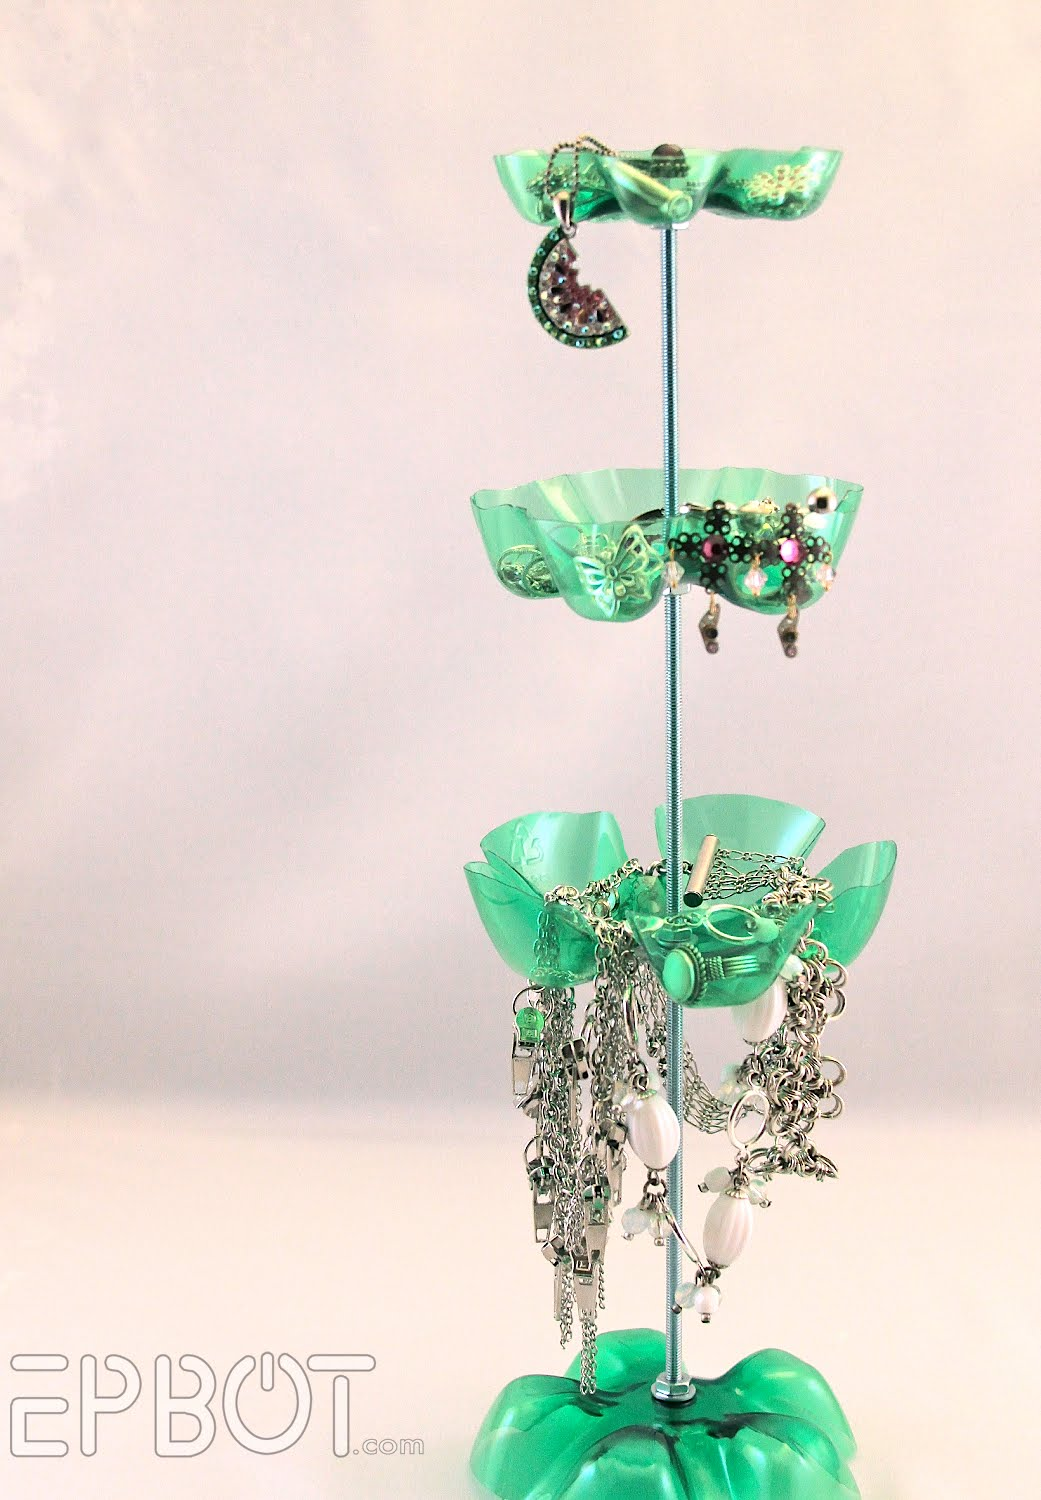 Epbot dew it yourself jewelry stand solutioingenieria Image collections